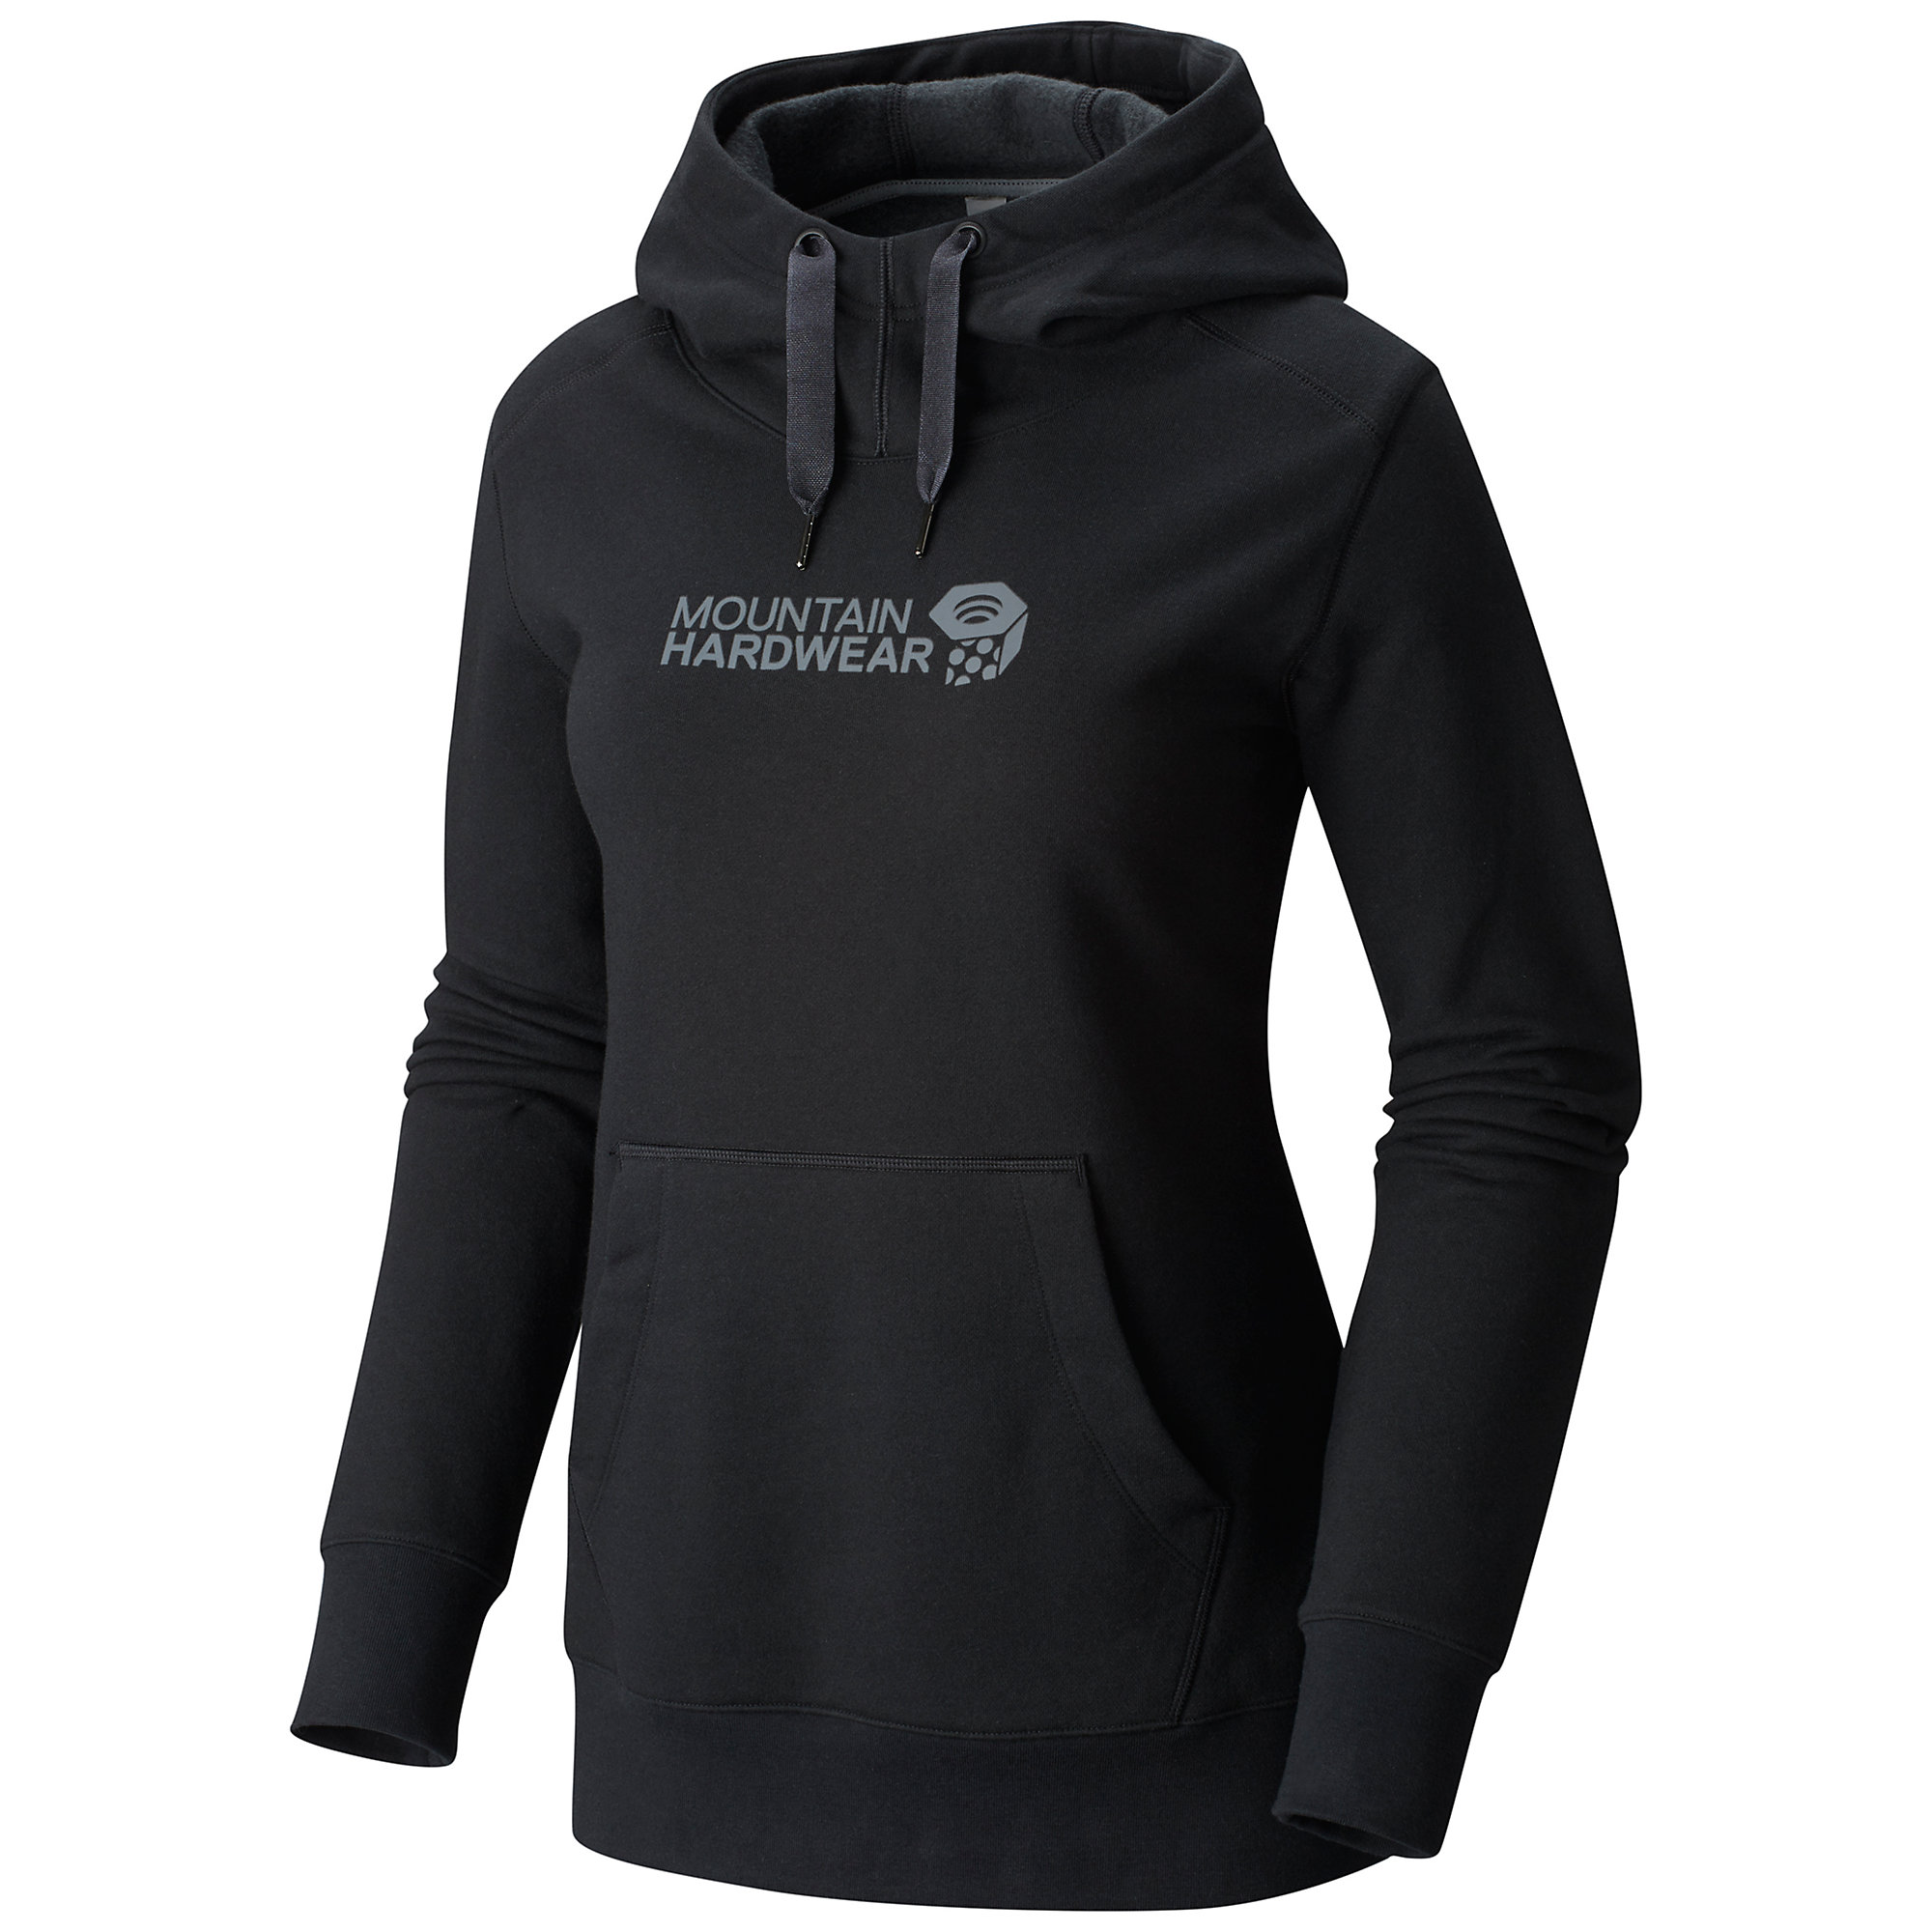 Mountain Hardwear Graphic Logo Pullover Hoody